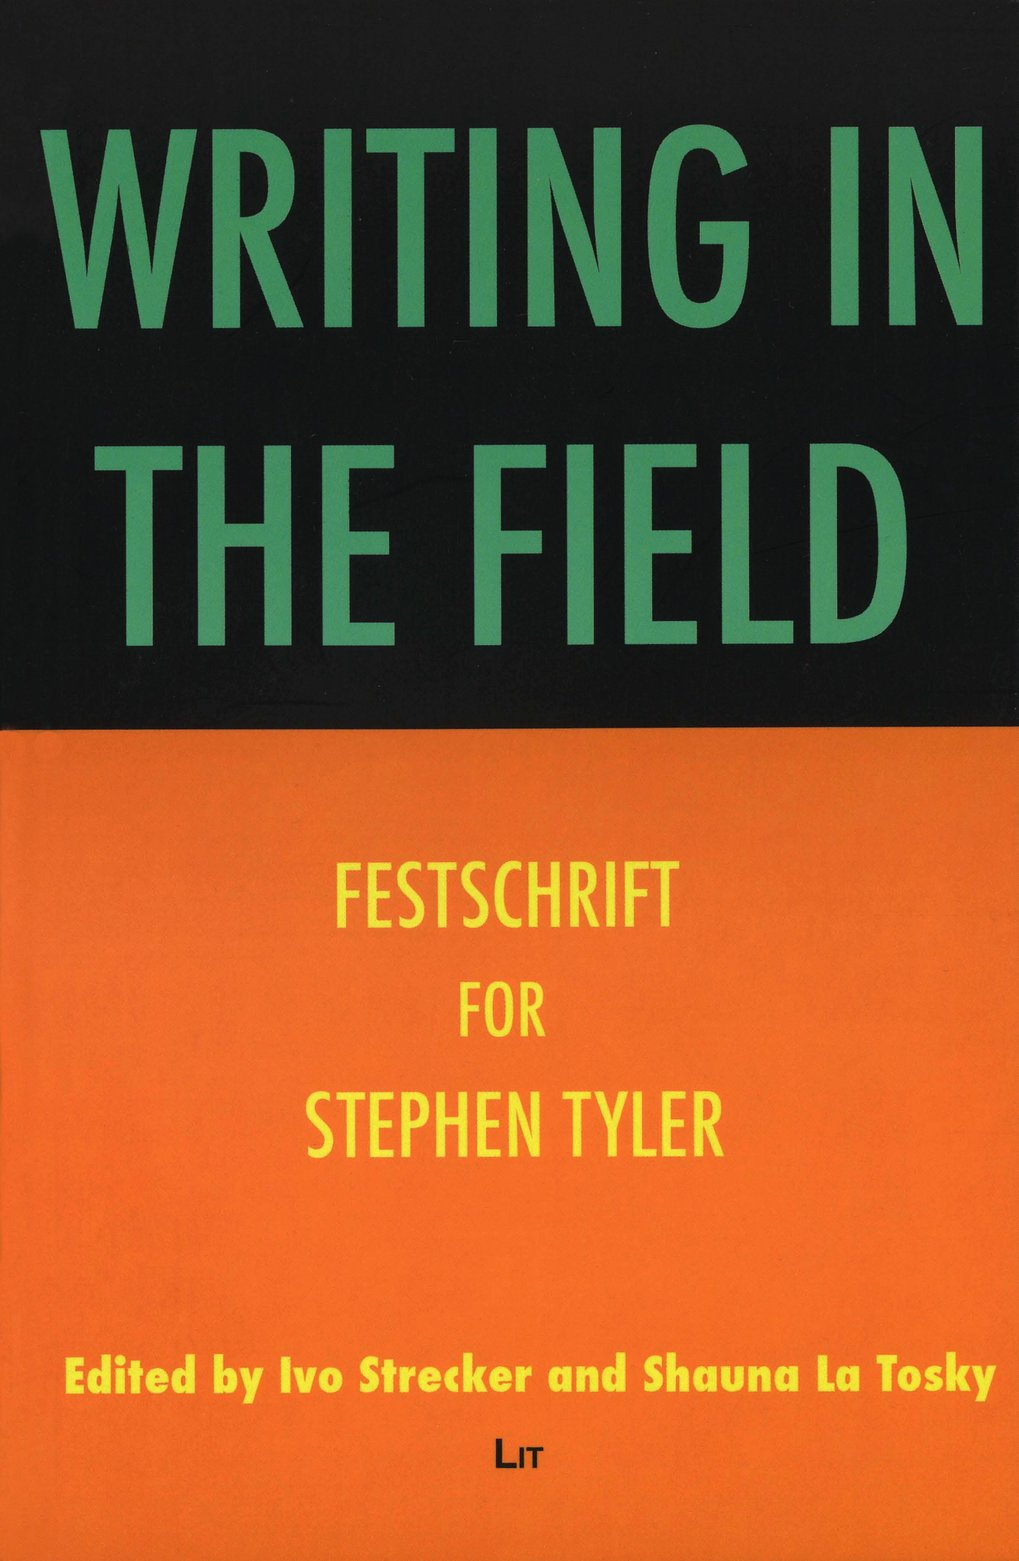 Writing in the Field: Festschrift for Stephen Tyler